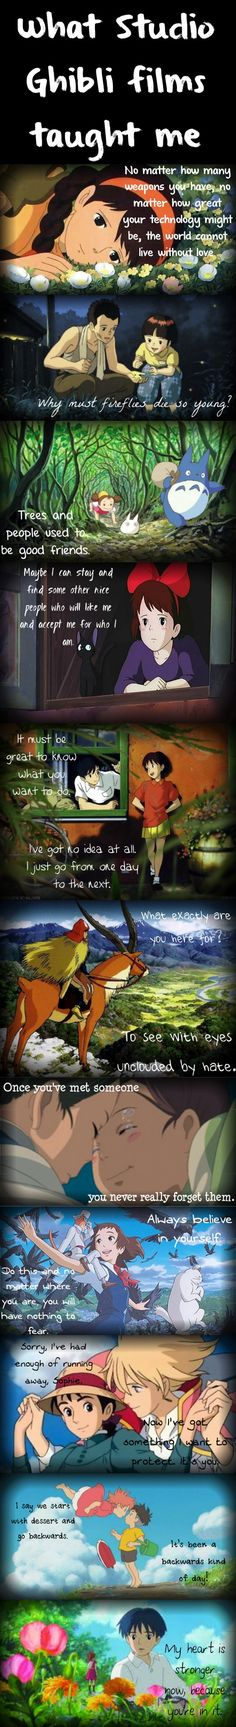 What Studio Ghibli films taught me  Laputa: Castle in the Sky, Grave of the Fireflies, My Neighbor Totoro, Kiki's Delivery Service, Whisper of the Heart, Princess Mononoke, Spirited Away, The Cat Returns, Howl's Moving Castle, Ponyo, The Borrowers (The Secret World of Arrietty)